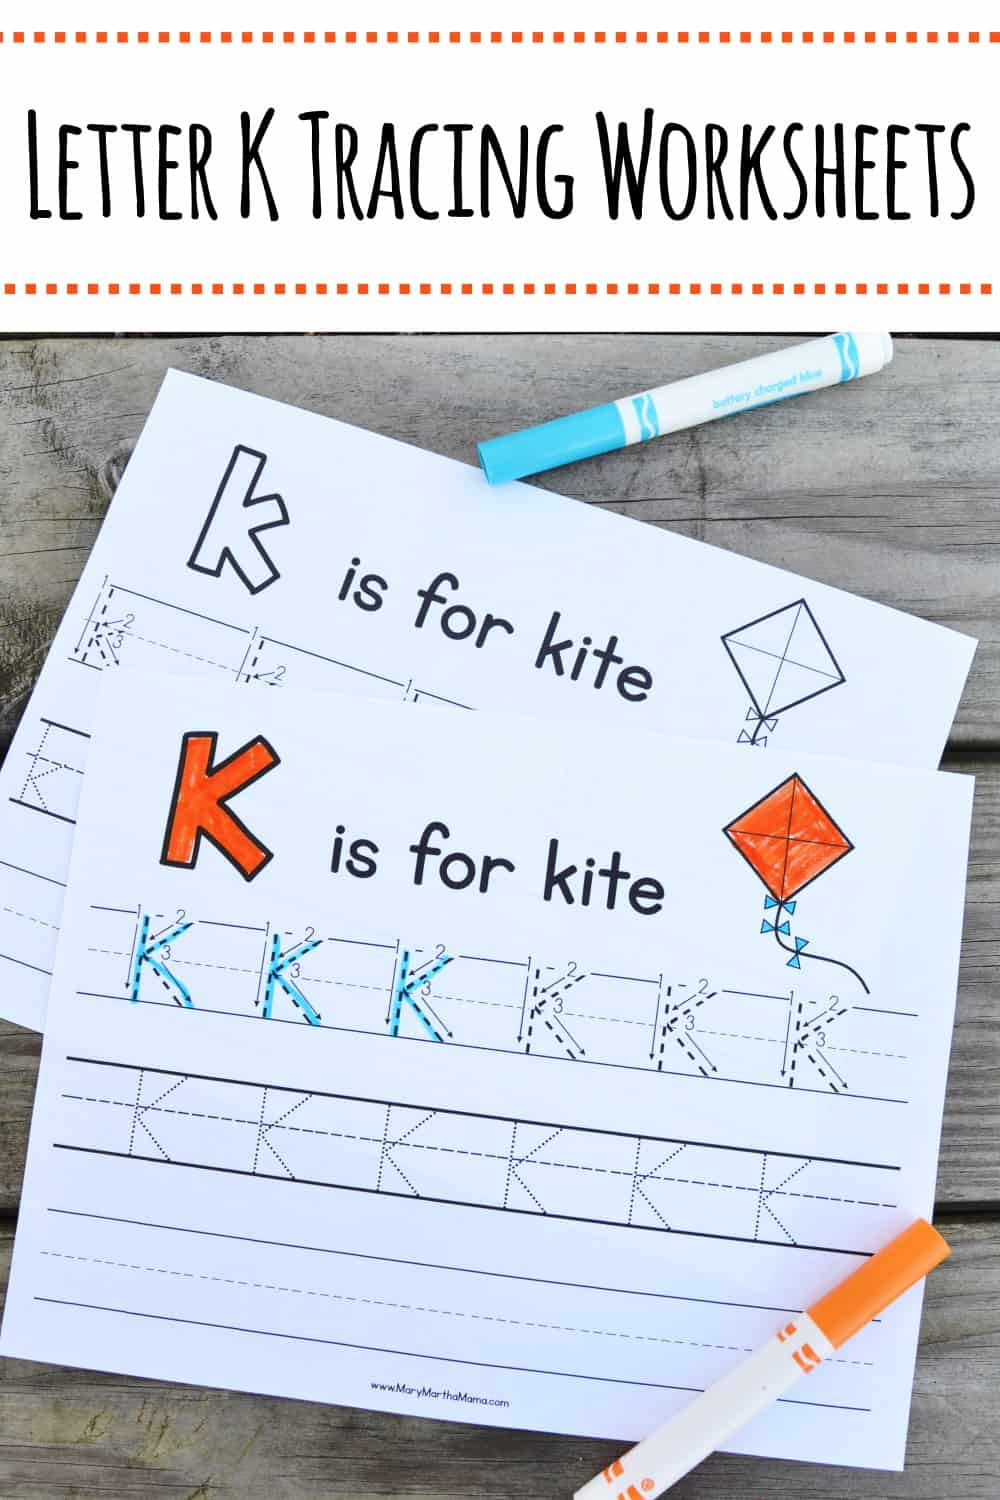 Use these free printable Letter K Tracing Worksheets to help your kiddo learn proper letter formation for letter K. Features upper and lower case K.